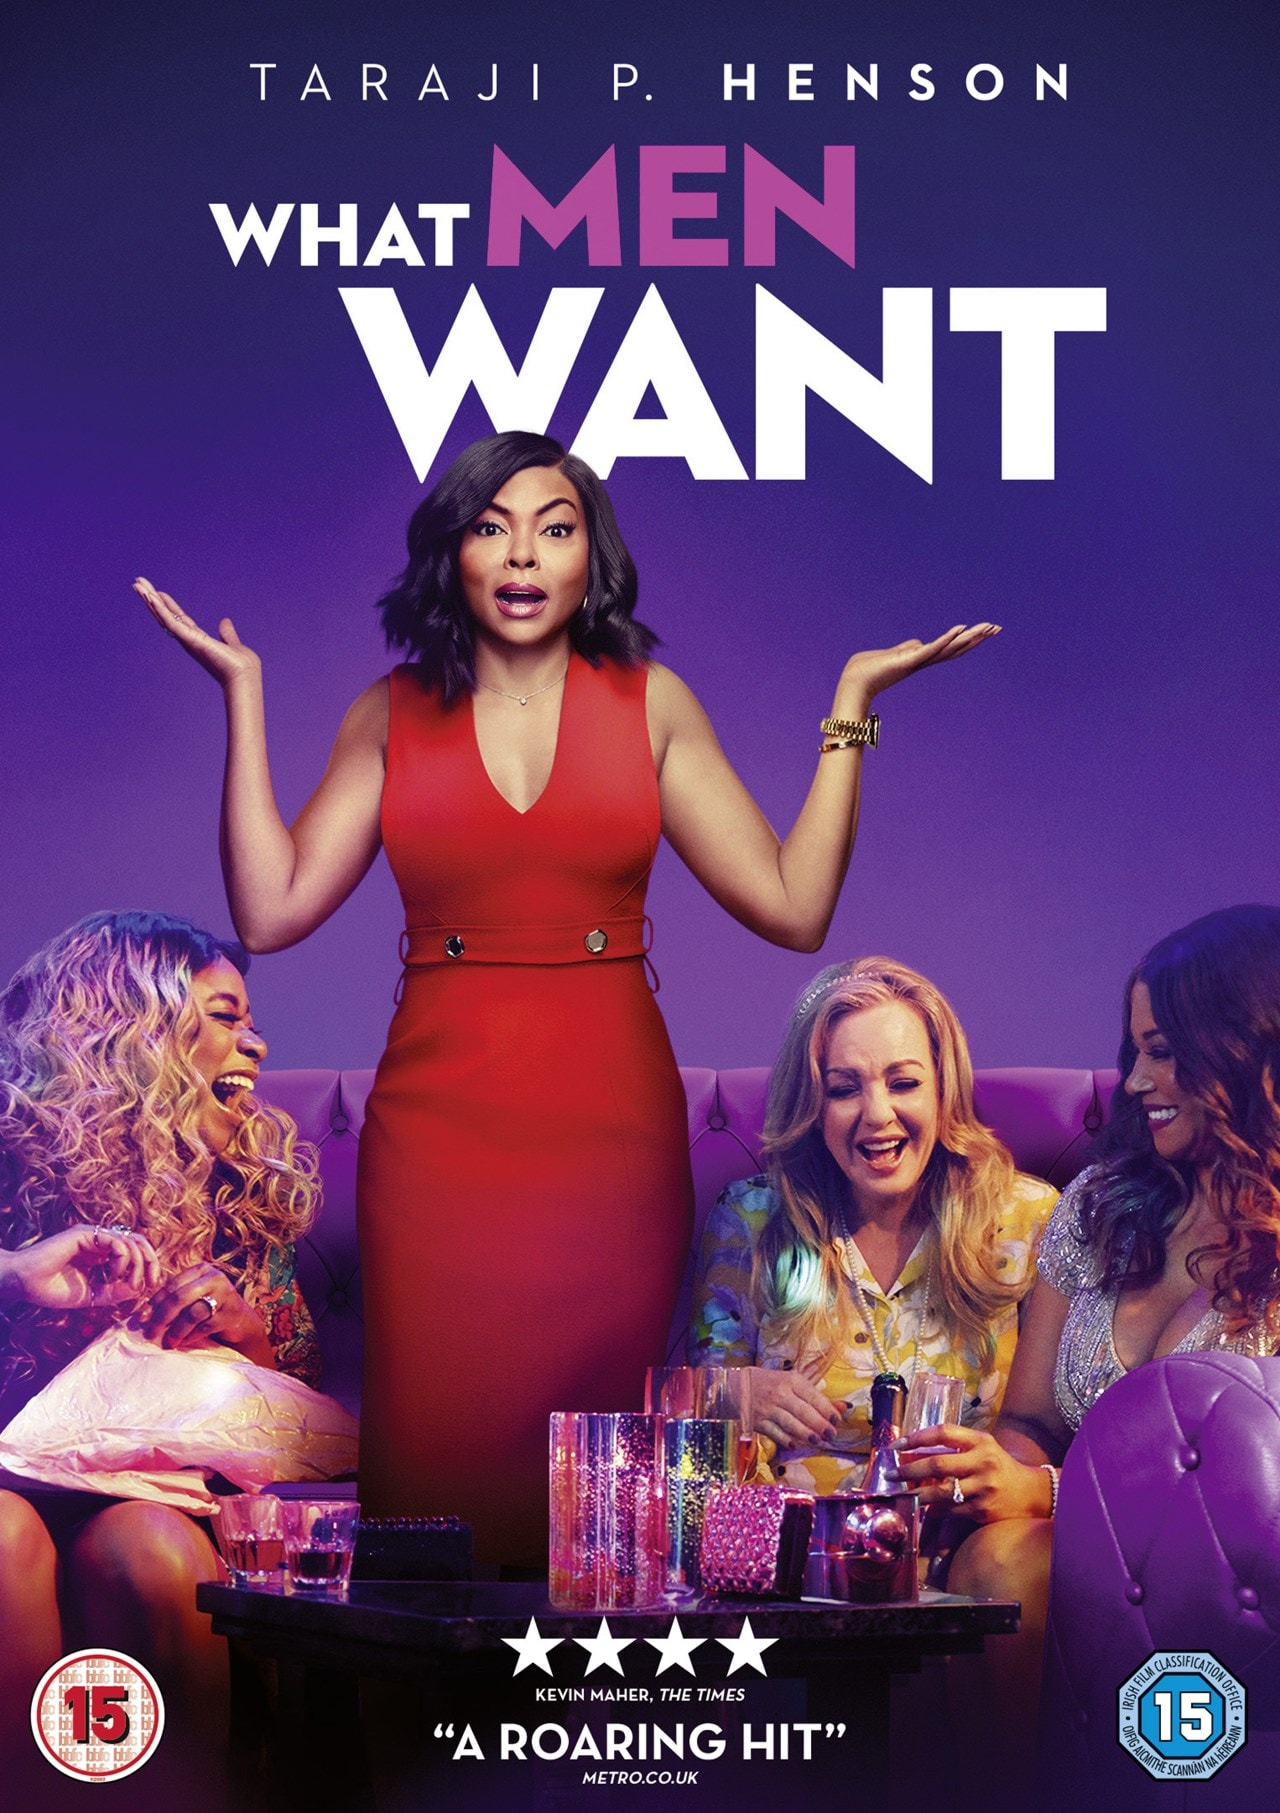 What Men Want | DVD | Free shipping over £20 | HMV Store